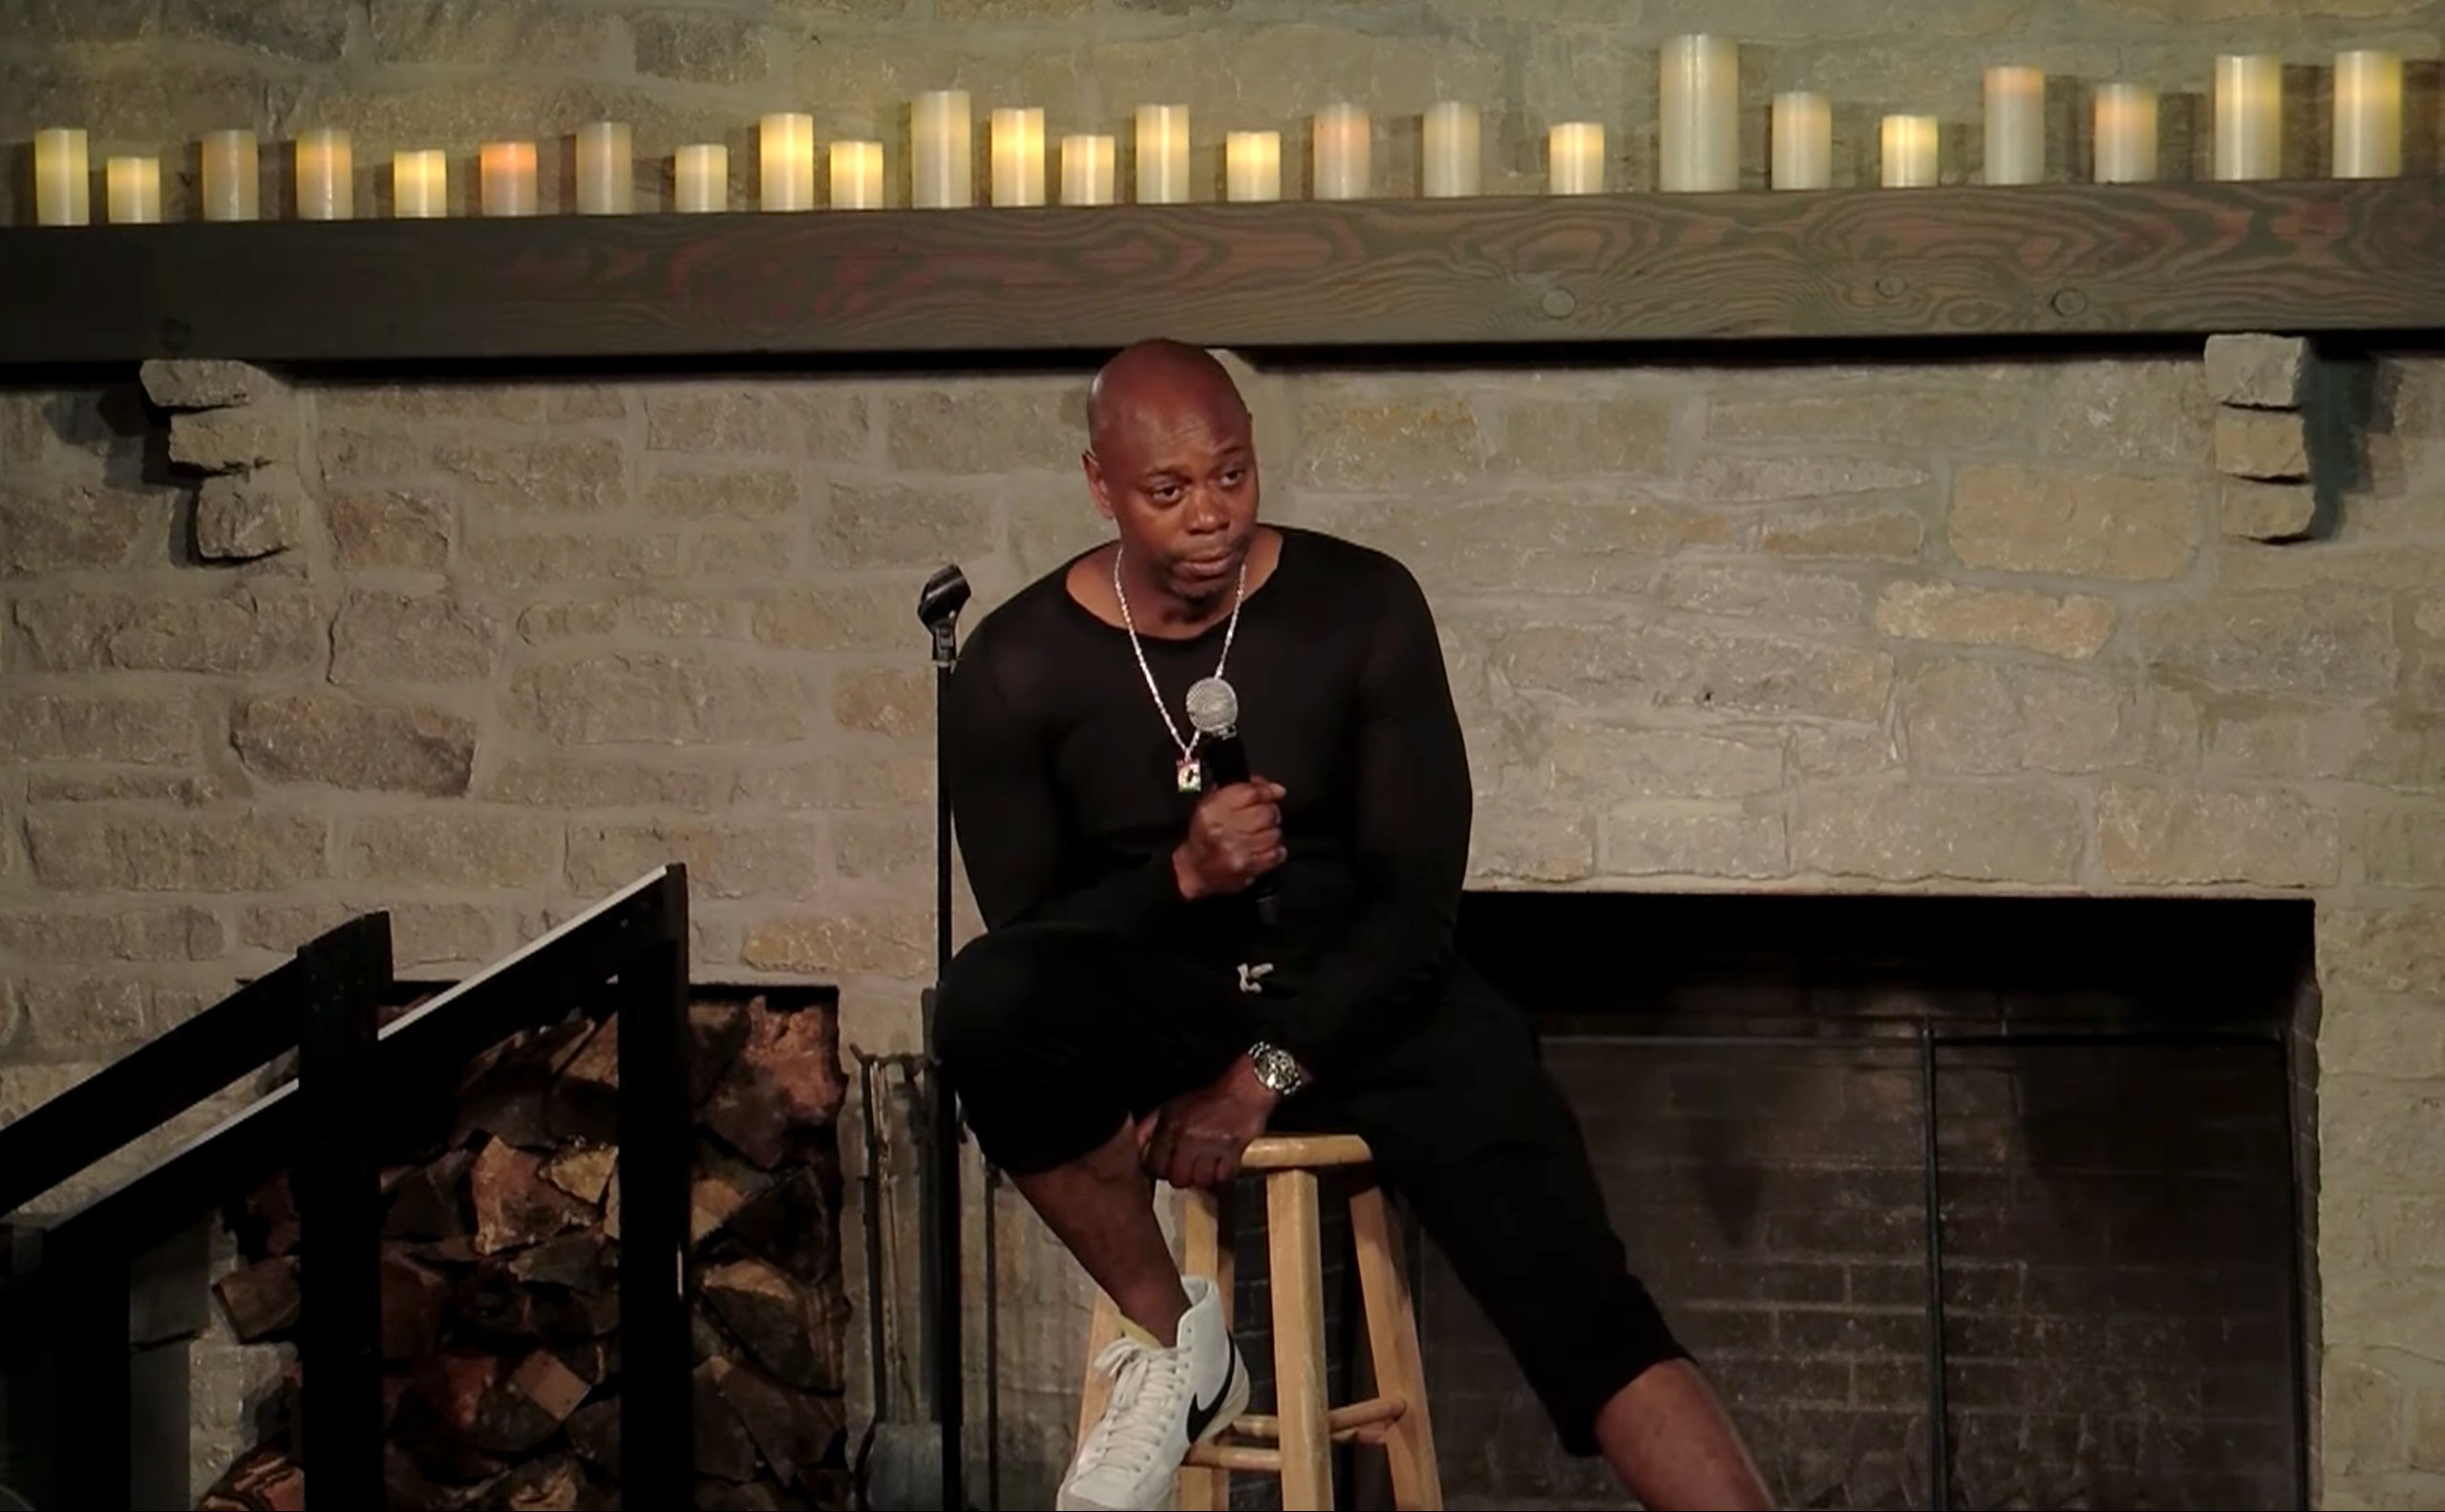 YouTube Trends 2020 Dave Chapelle